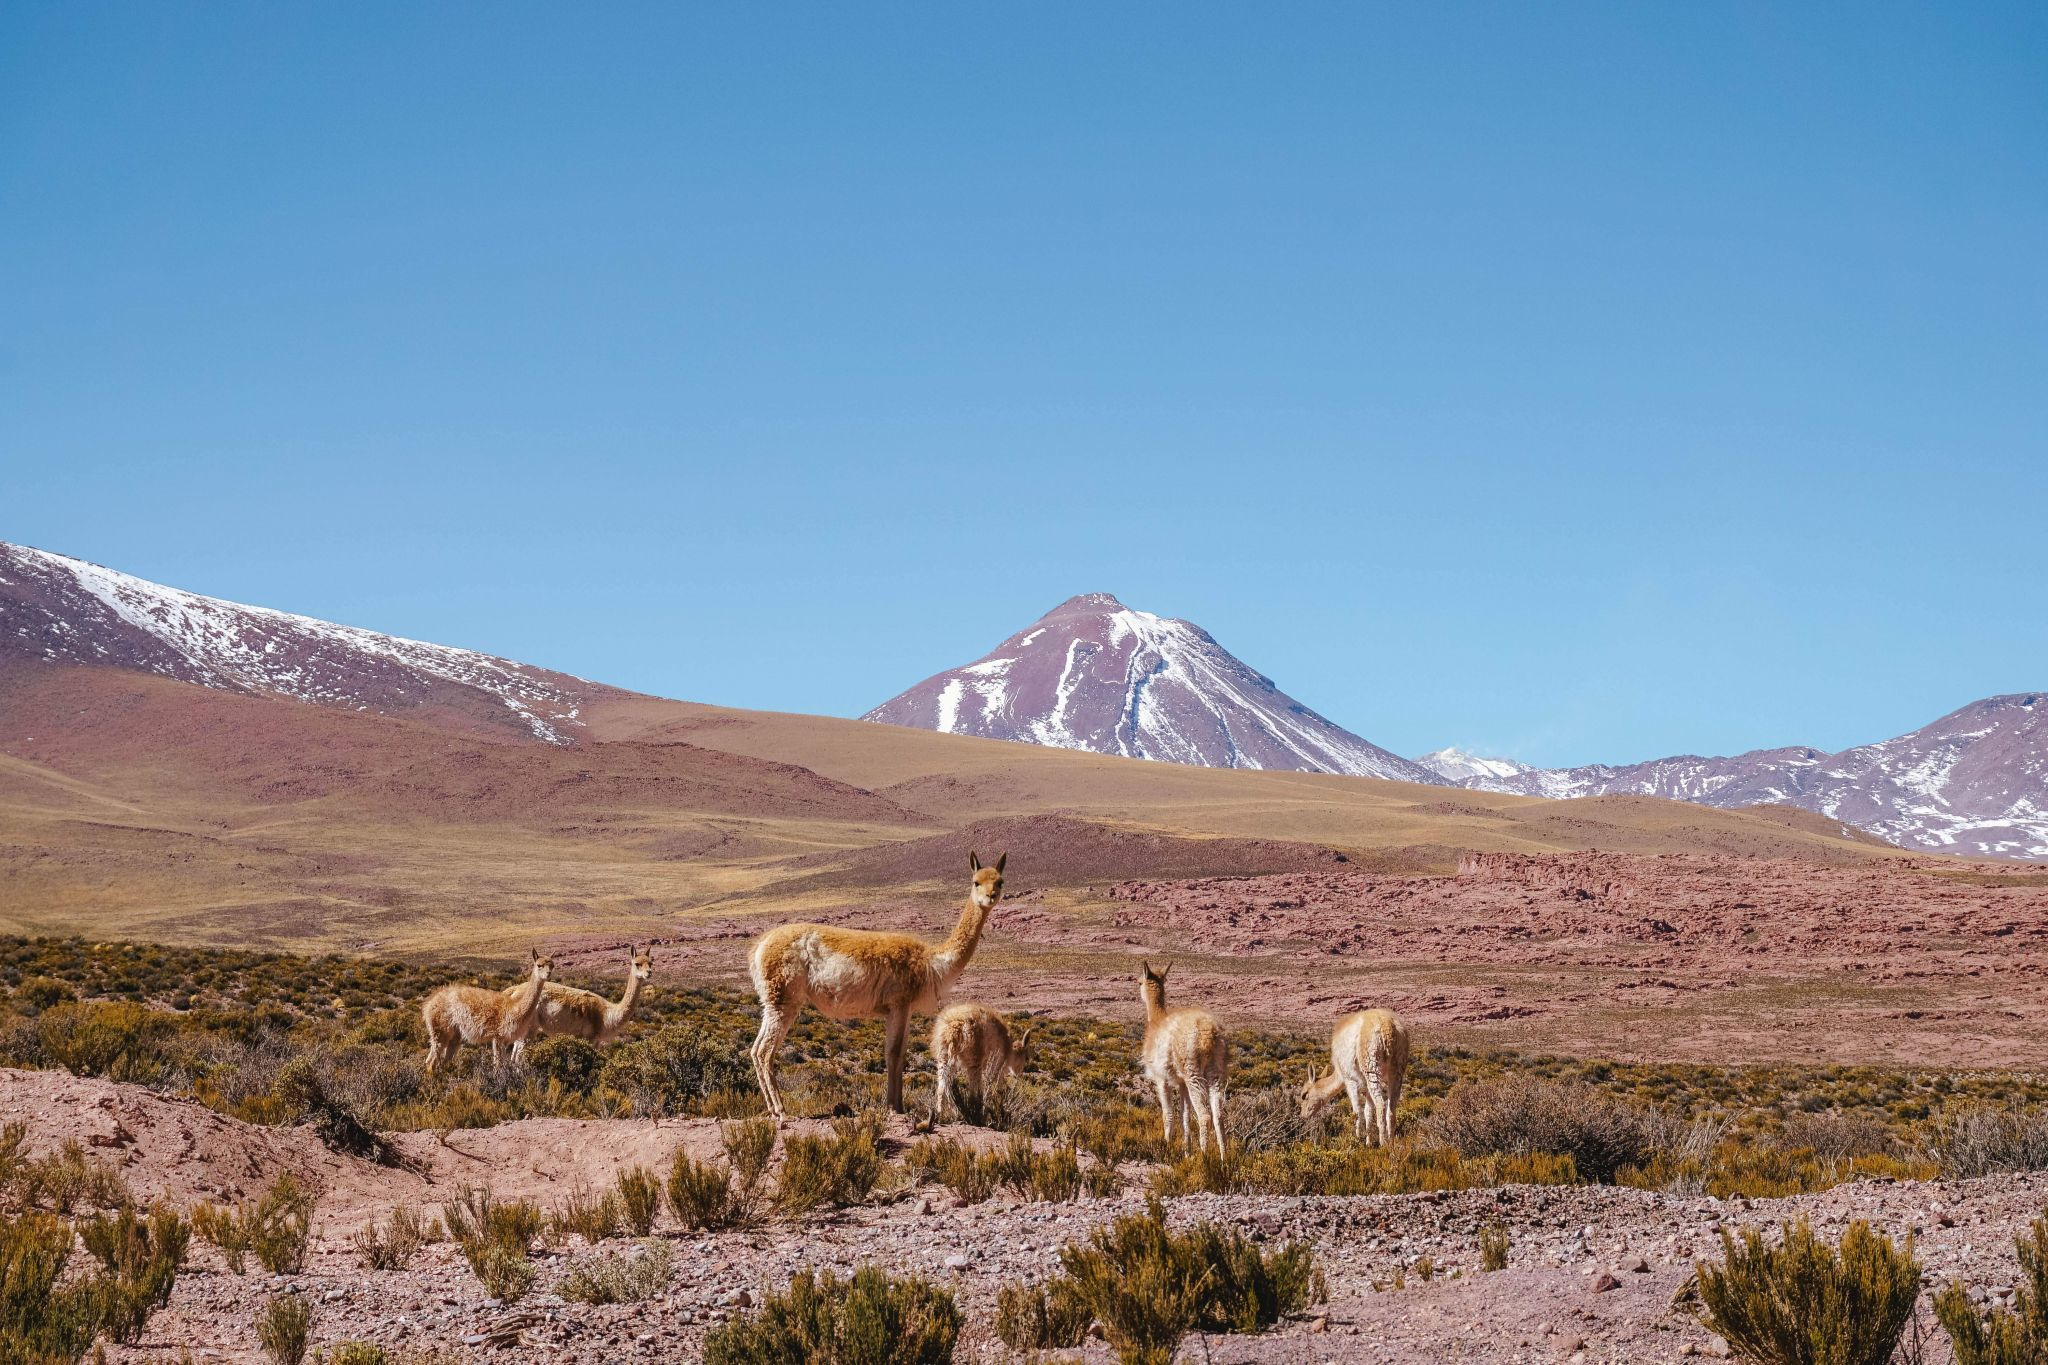 Self-driving guide-to-Atacama-Desert-itinerary-must-see-spots-33